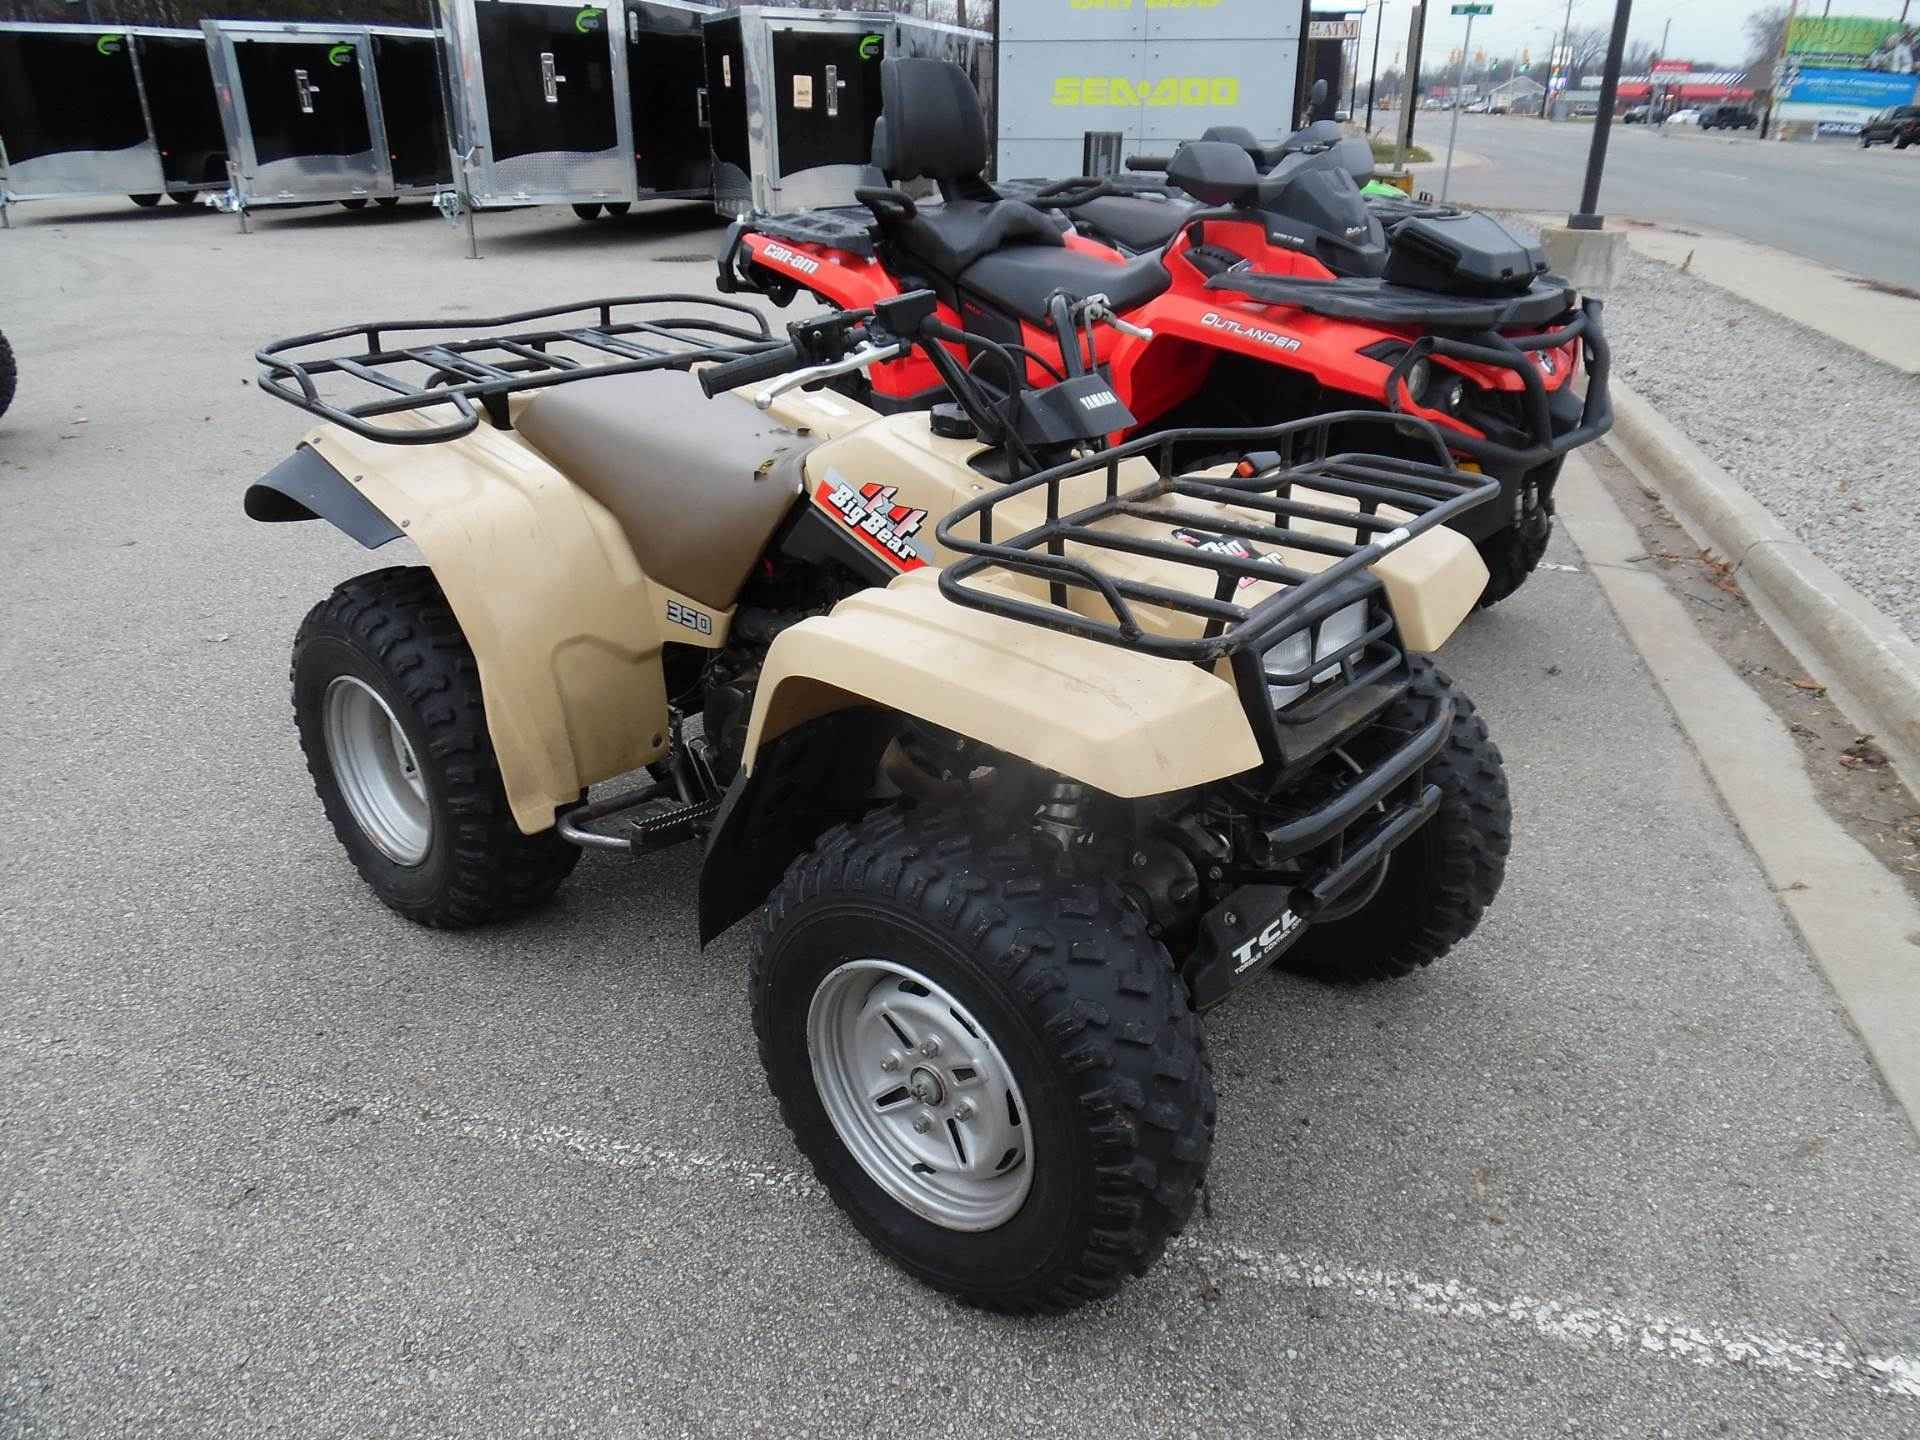 Used 1990 Yamaha Big Bear 350 4x4 Atvs For Sale In